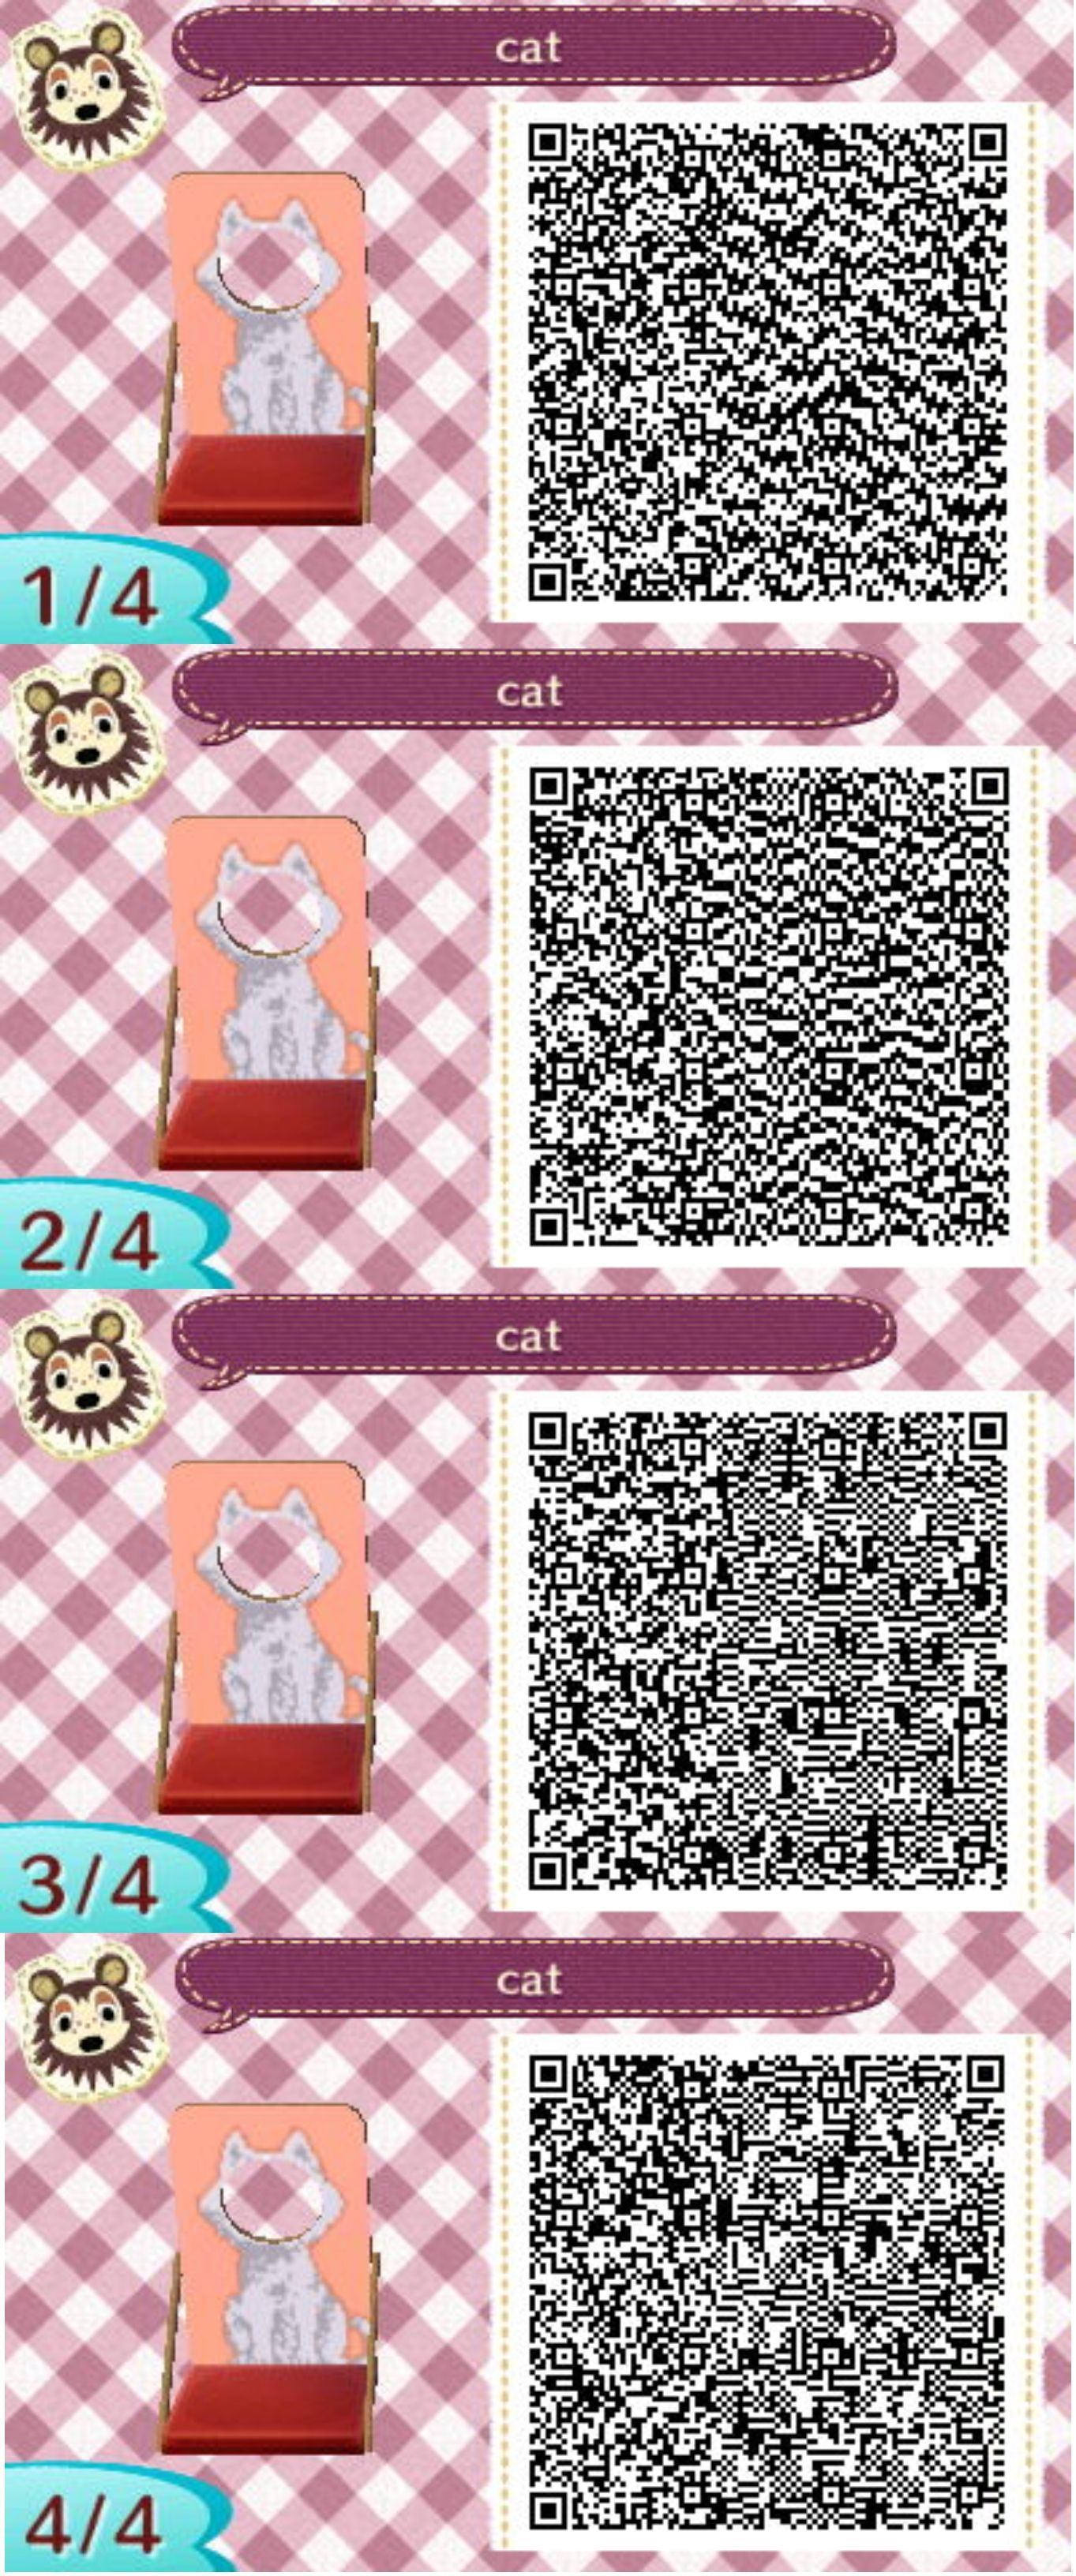 Cat Standee For Acnl Towns Scan Qr Code And Upload Onto The Pwp A